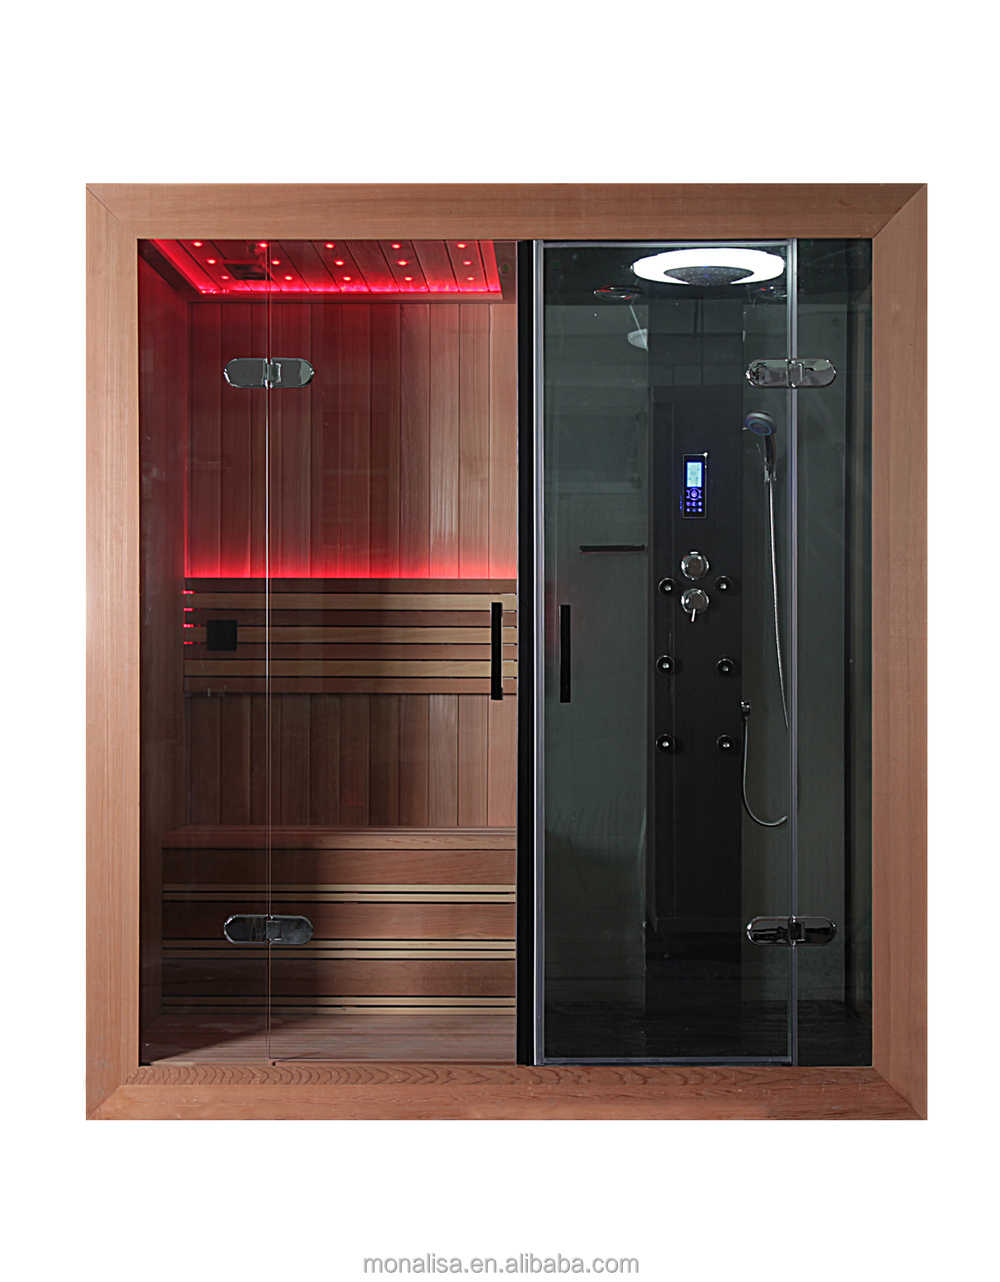 Luxury Bathroom Design Portable Led Steam Shower Sauna